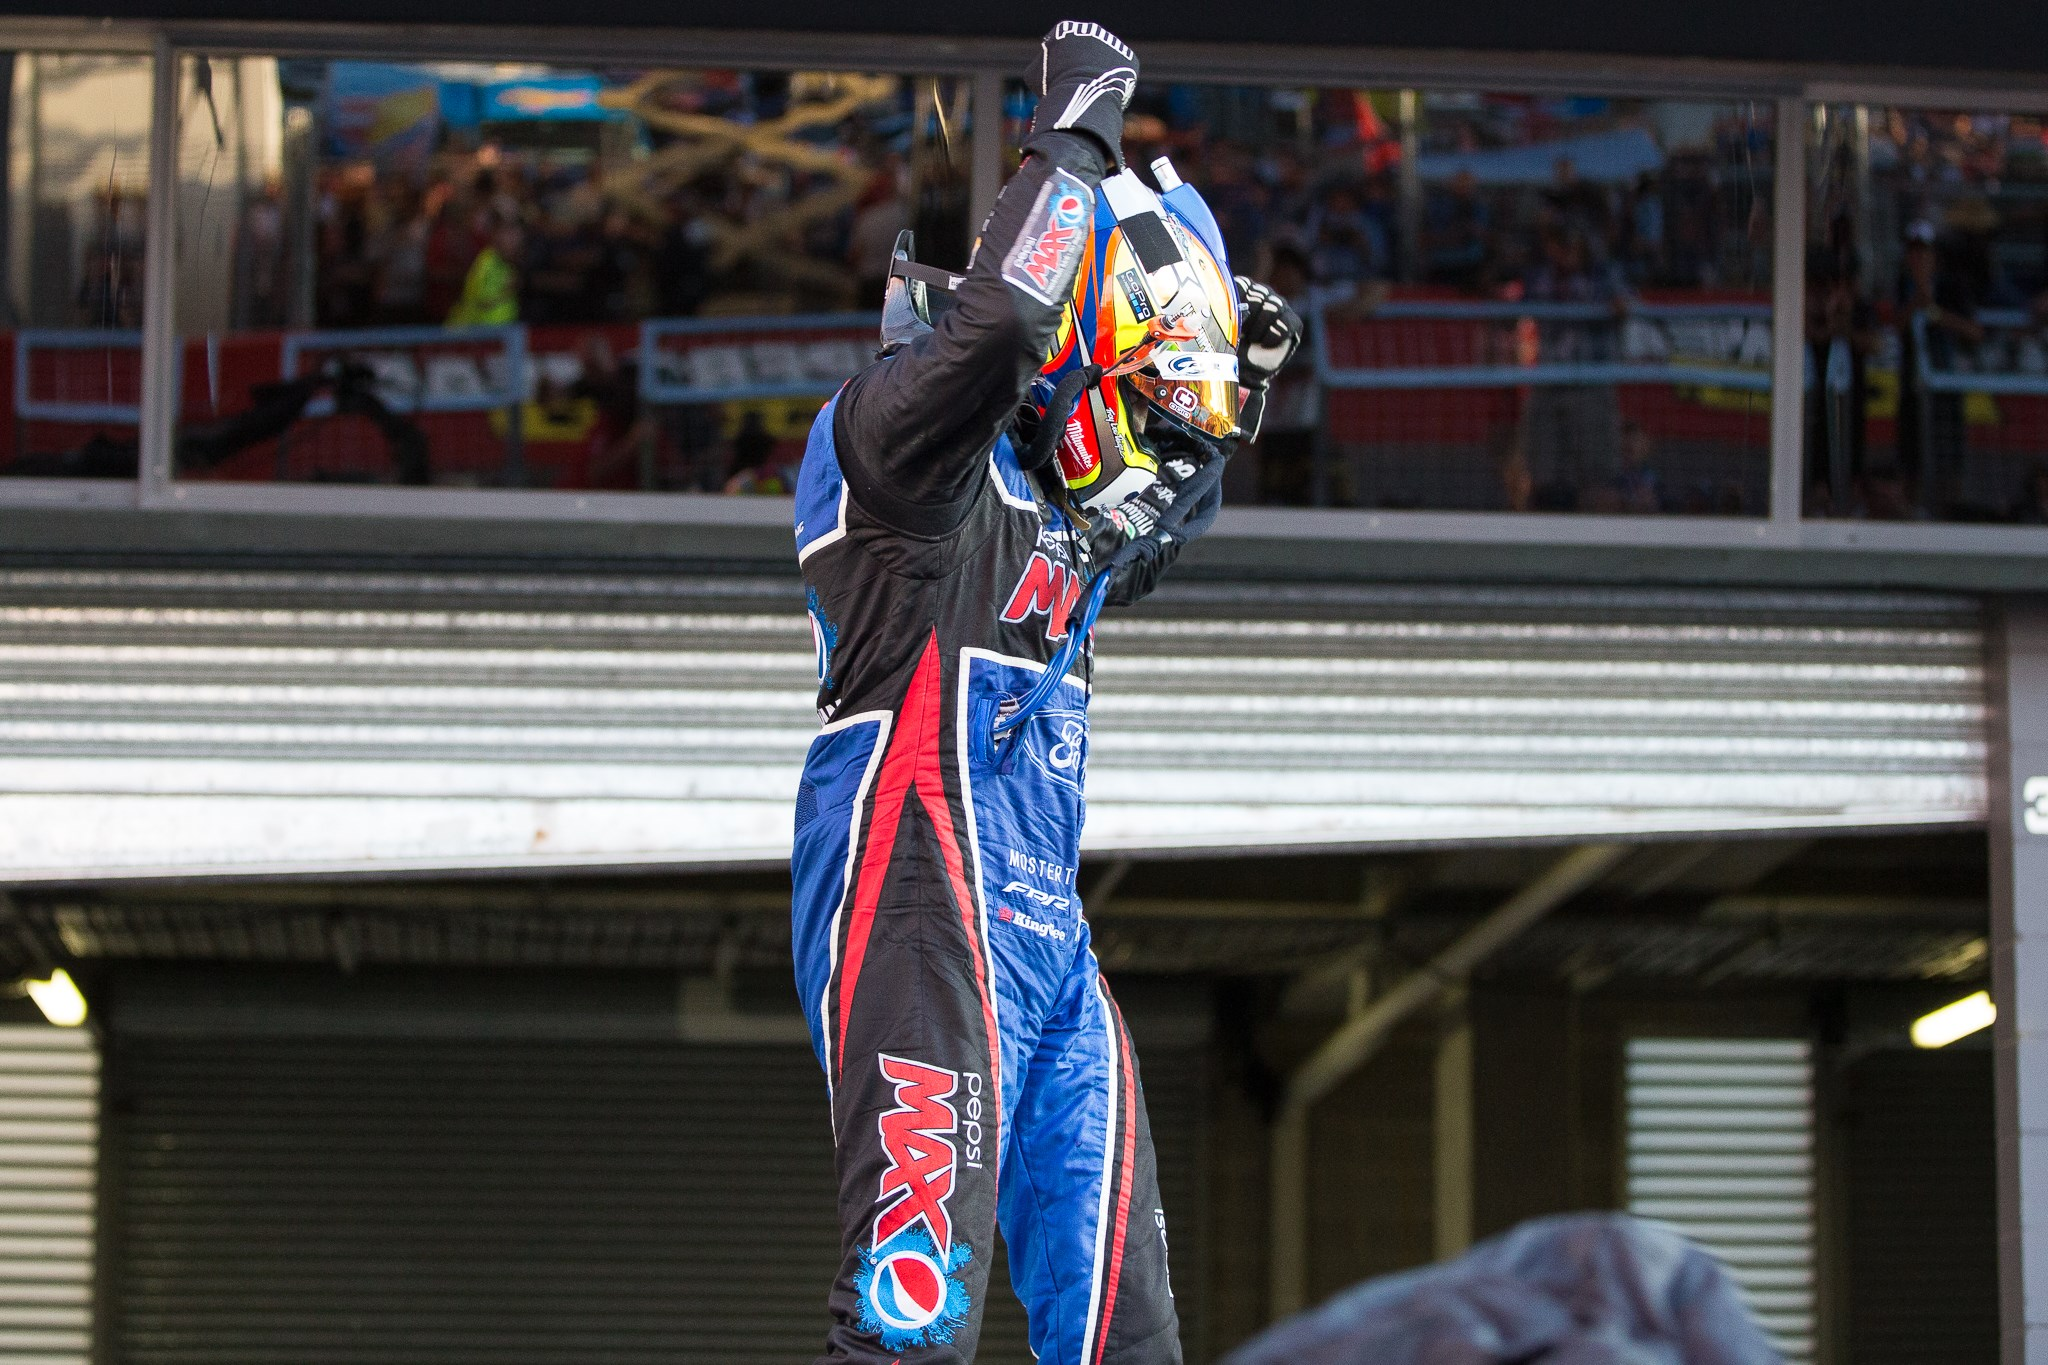 Chaz Mostert celebrating his maiden Bathurst 1000 win in 2014. Photo by Rhys Vandersyde